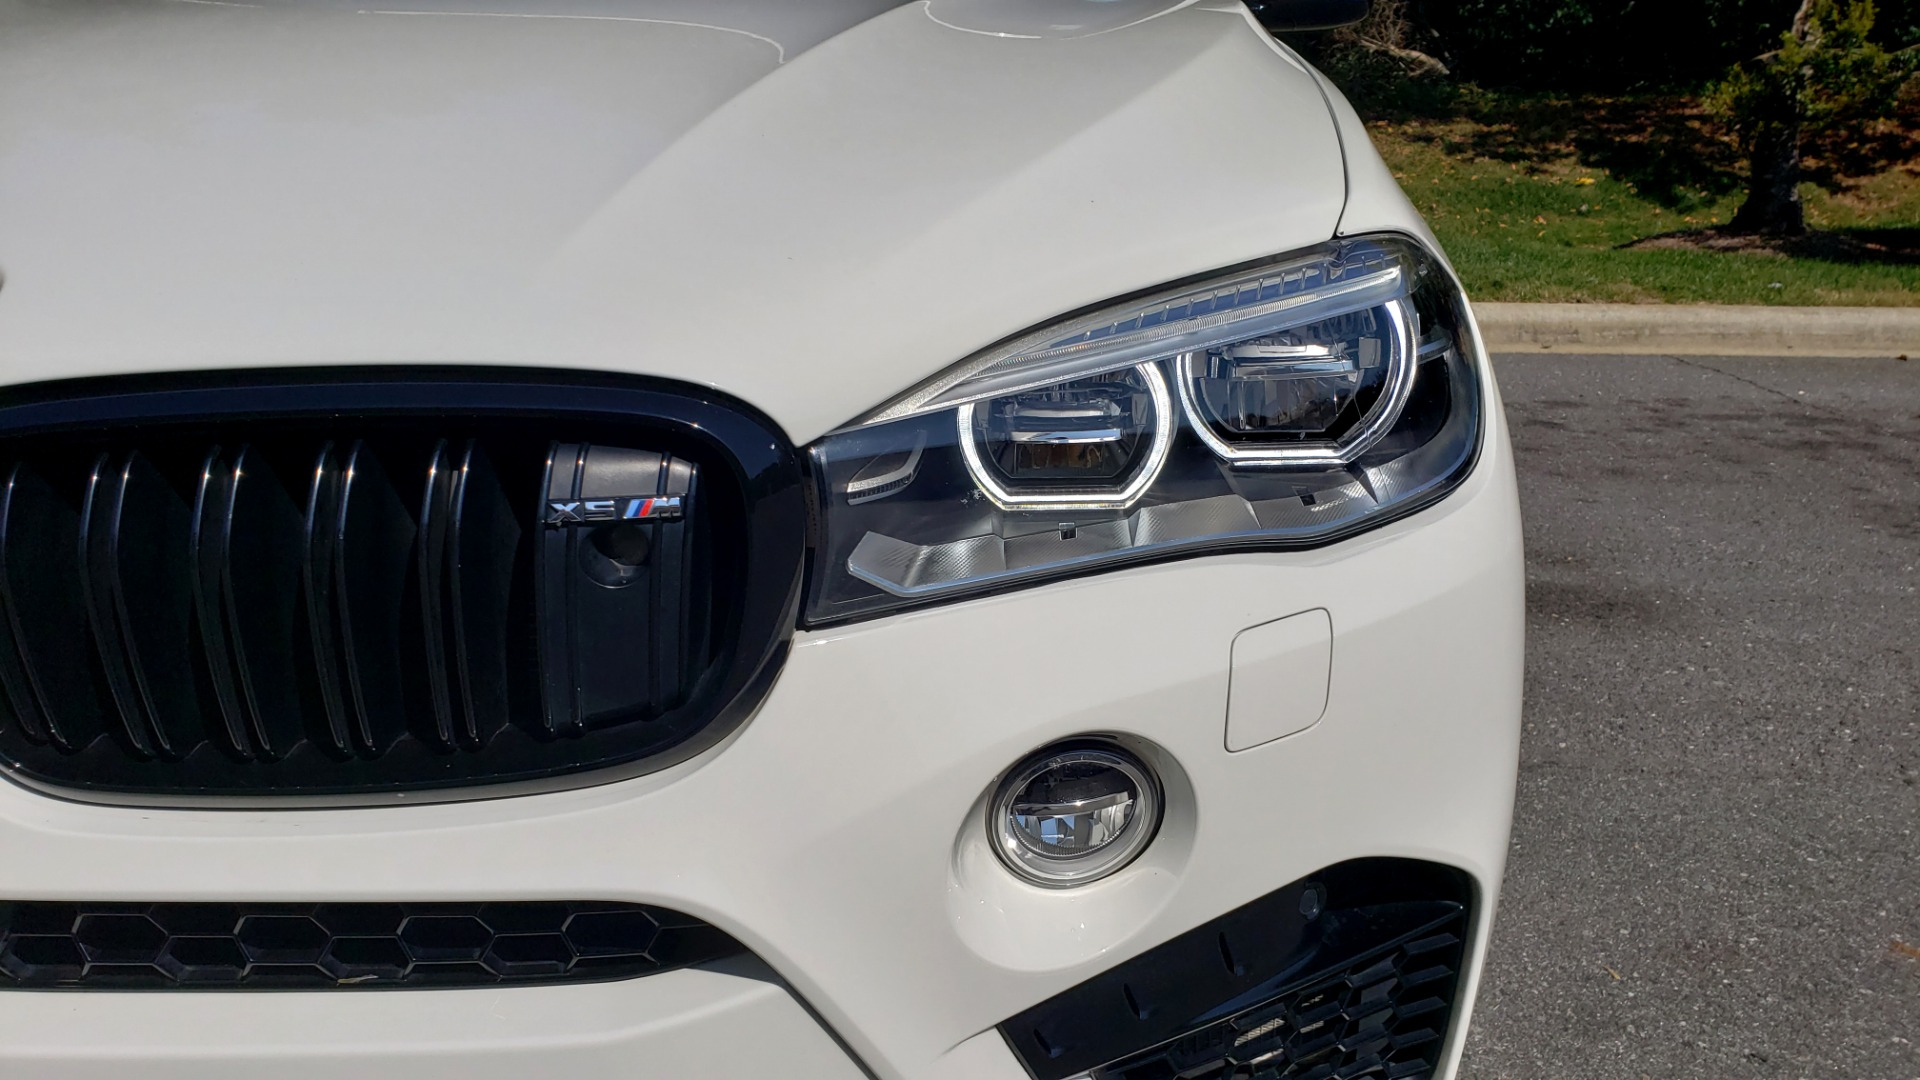 Used 2017 BMW X5 M SPORT / AWD / DRVR ASST / EXEC PKG / B&O SND / NIGHT VIS / PARK ASST for sale Sold at Formula Imports in Charlotte NC 28227 26